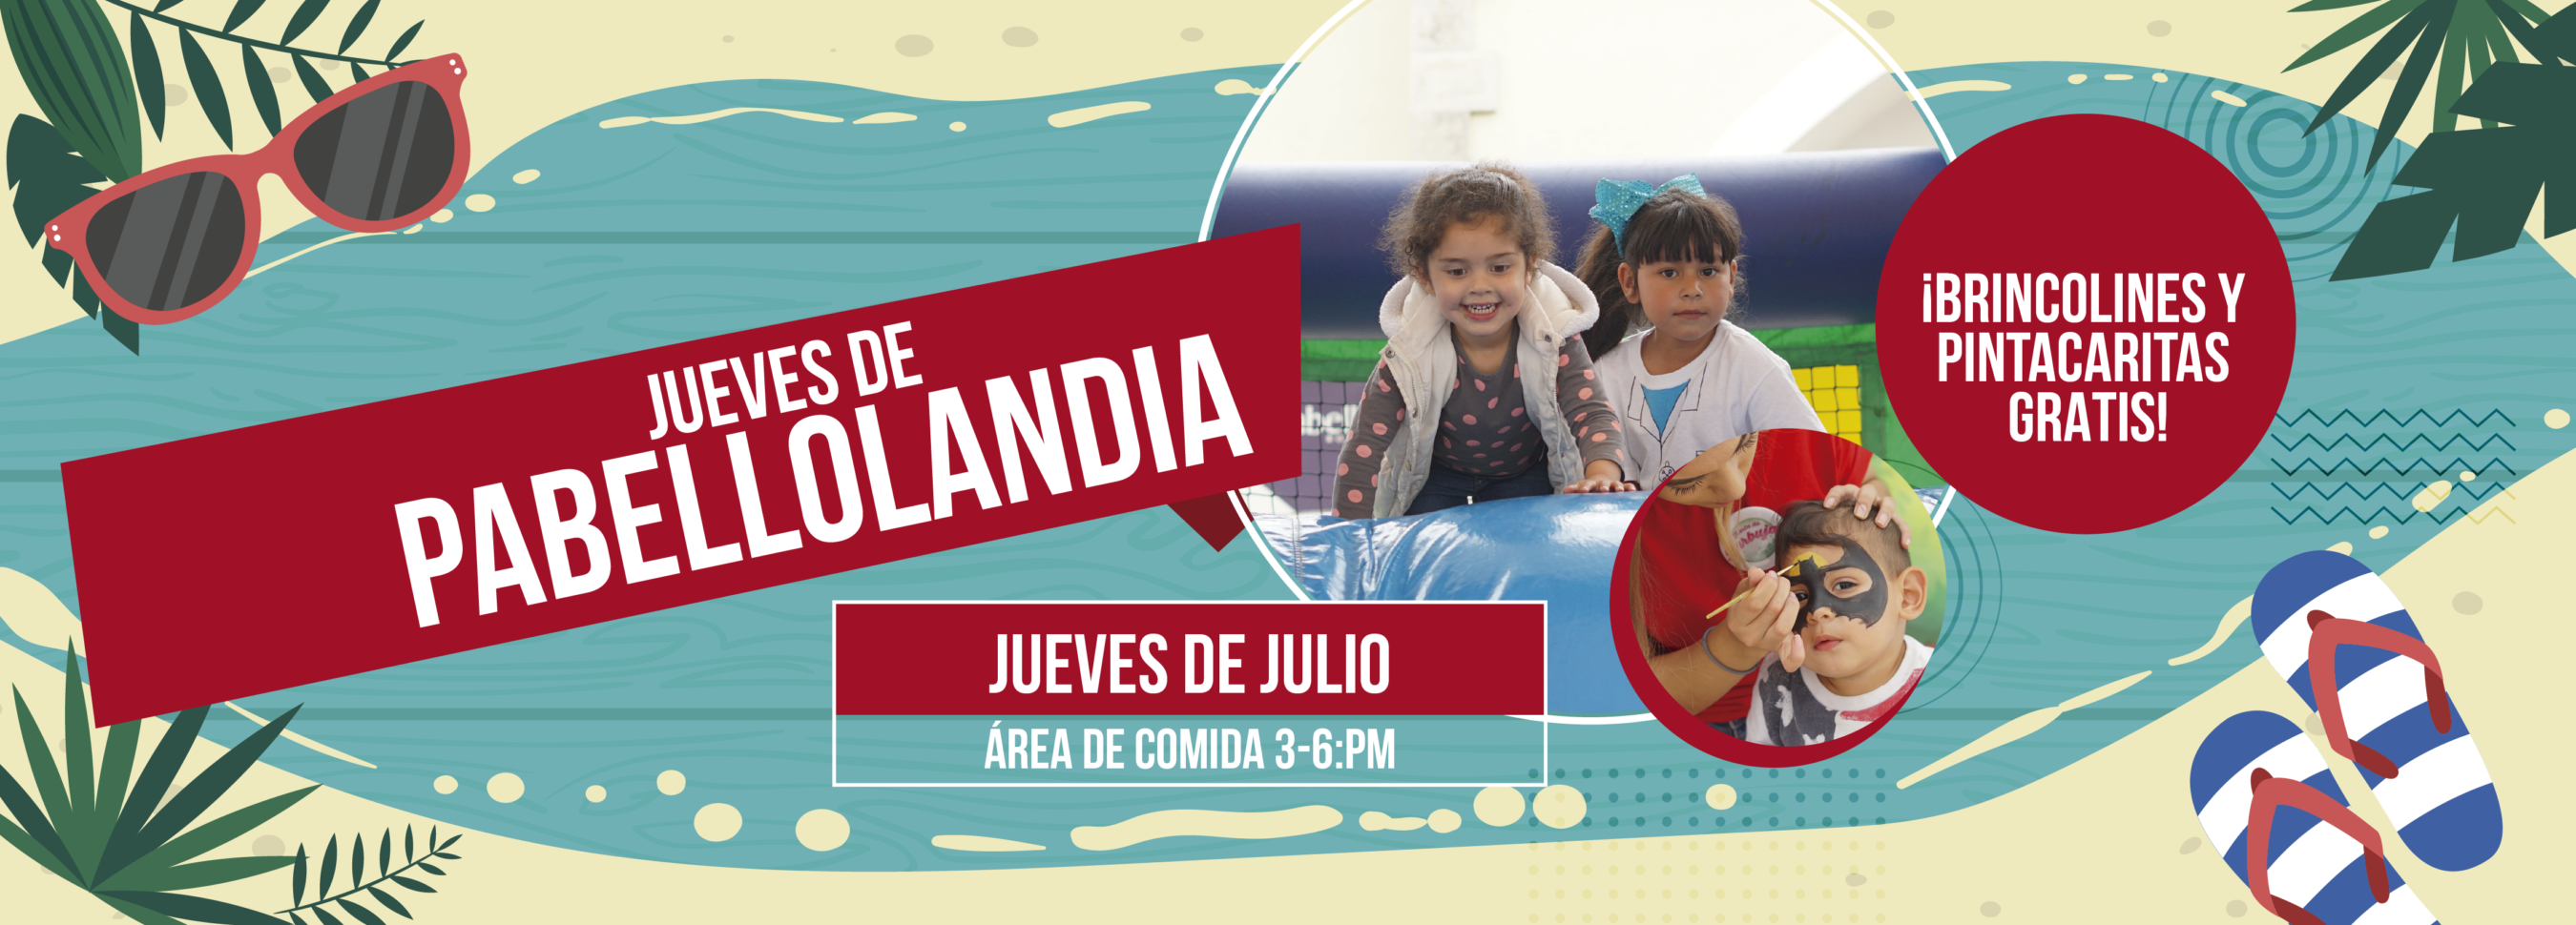 banners julio-01